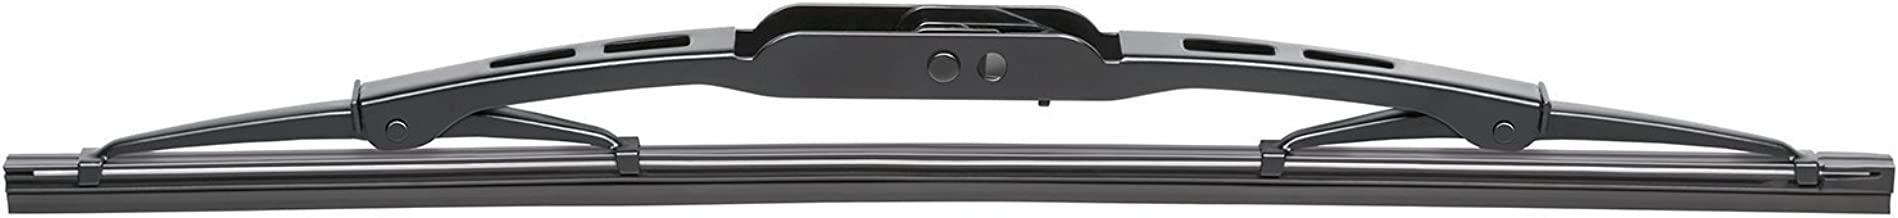 TRICO Exact Fit 12-N Wiper Blade